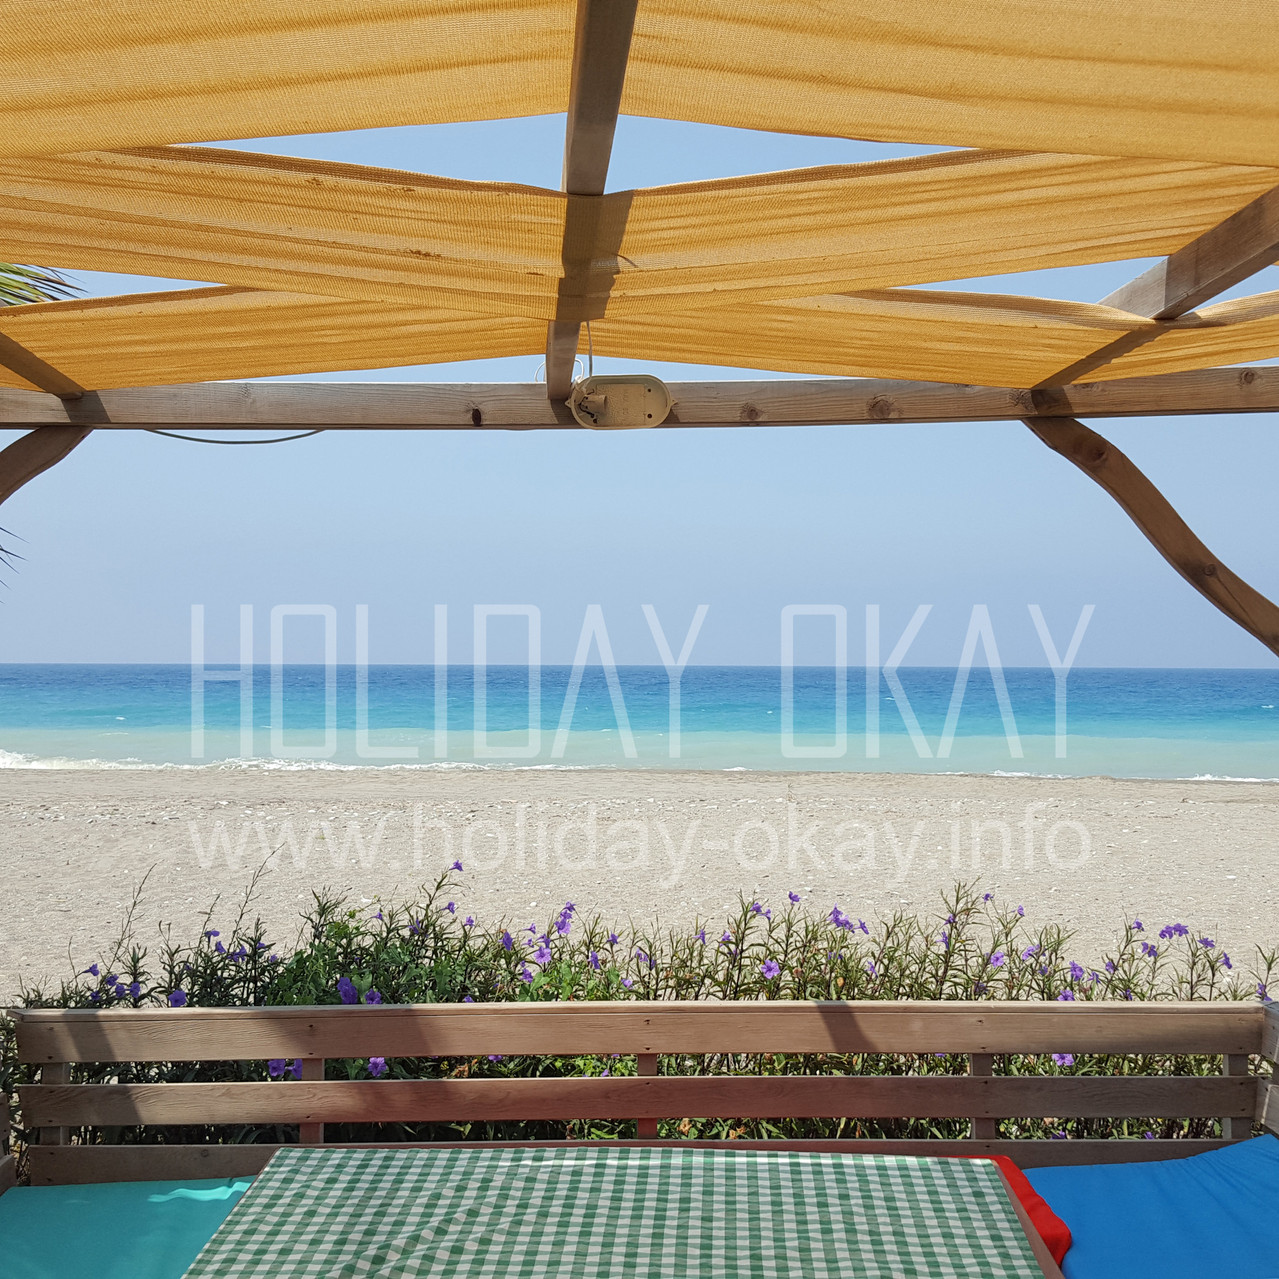 HOLIDAY OKAY | SUSA BEACH PARK